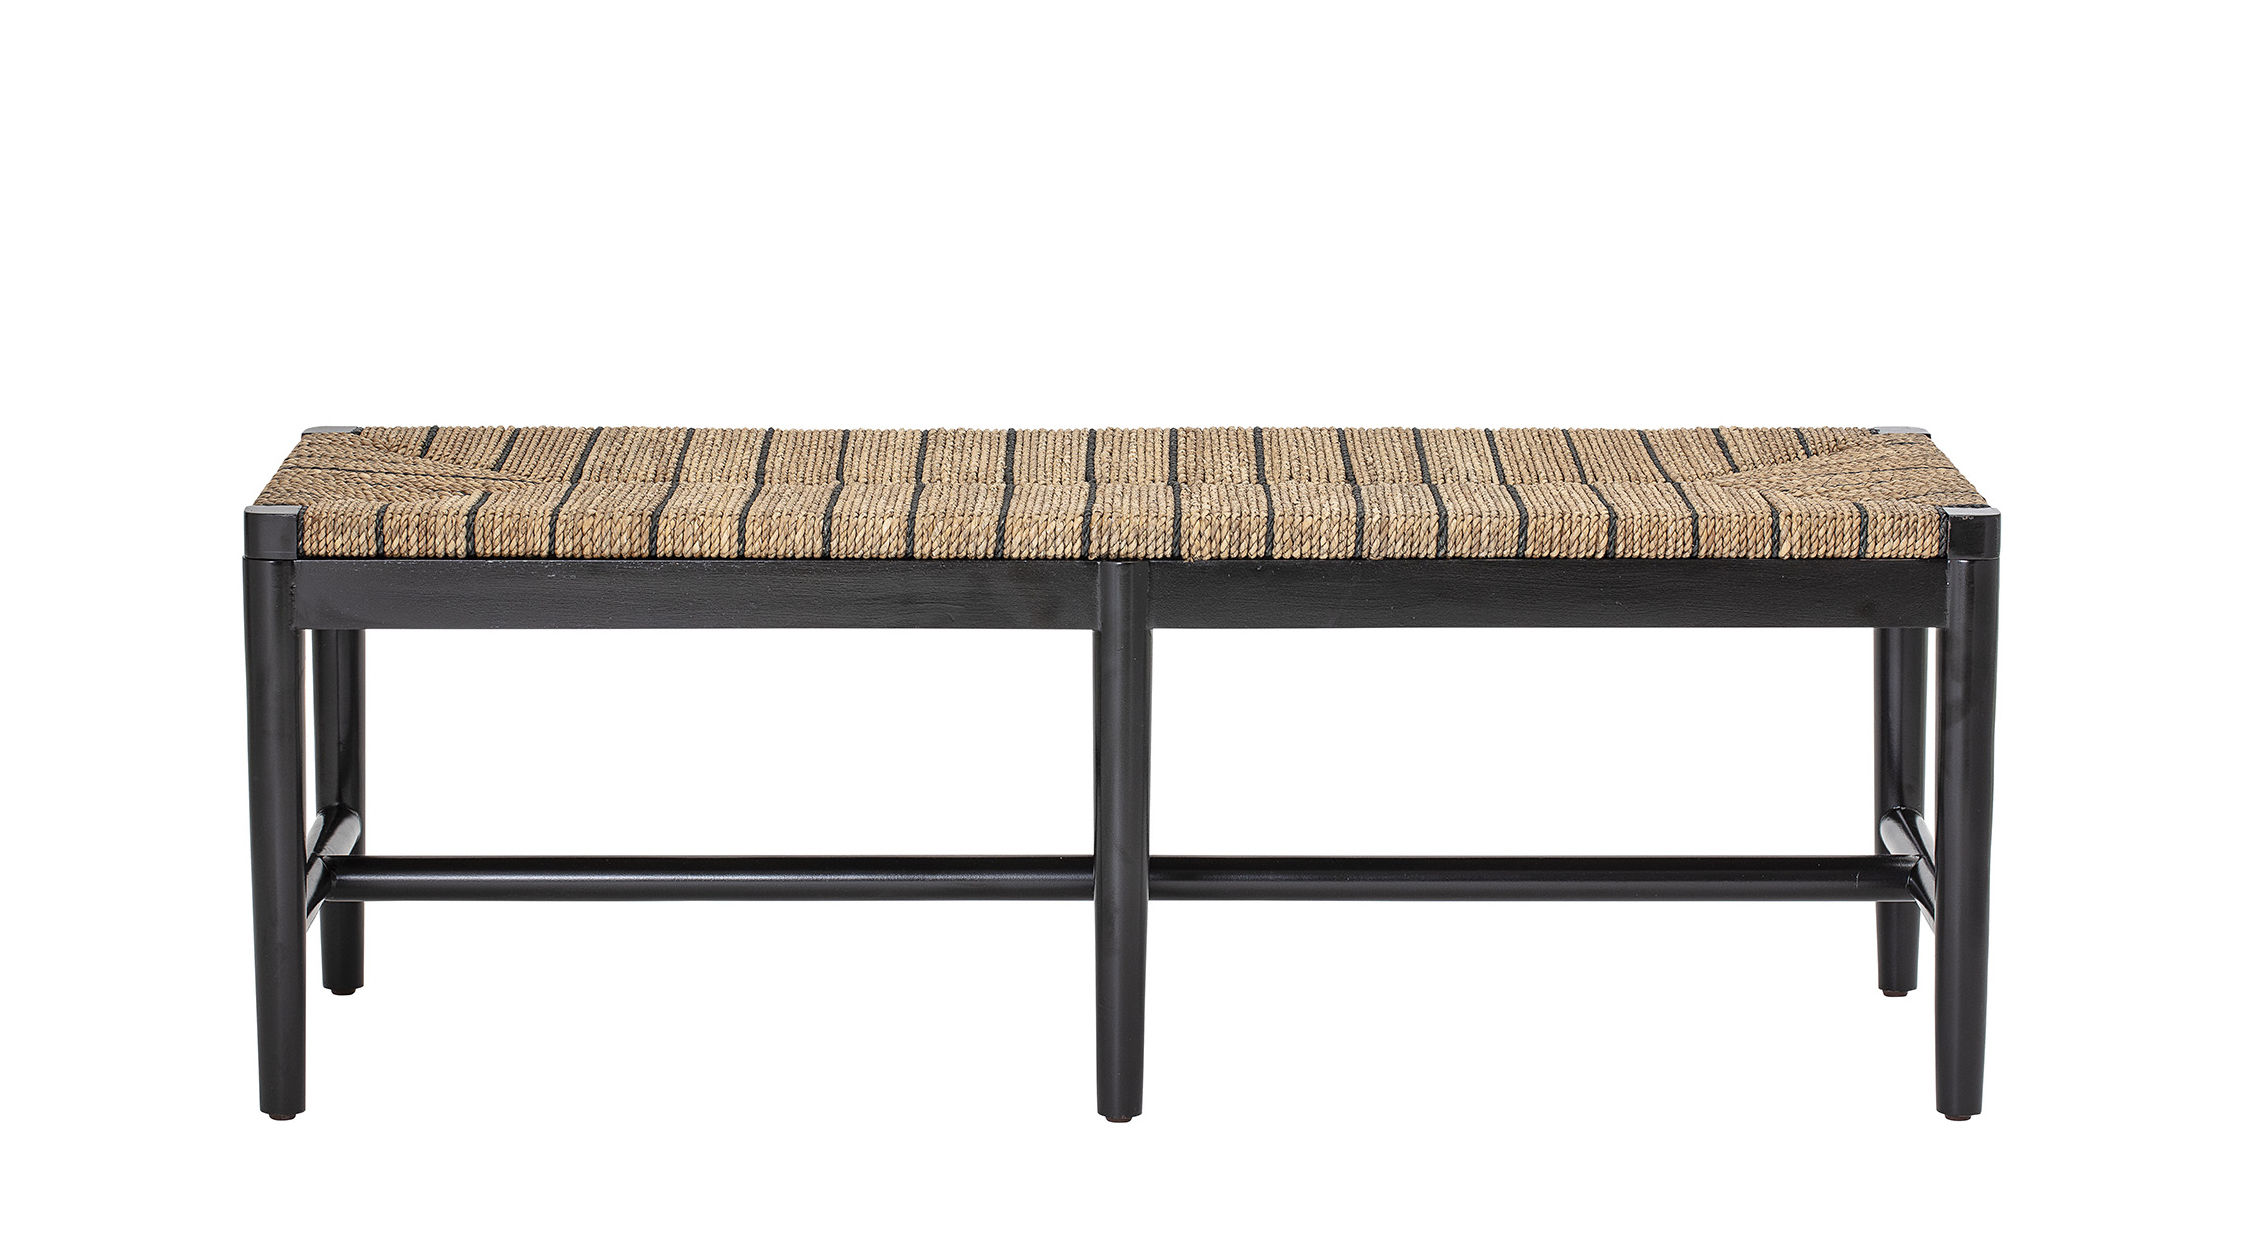 Furniture - Benches - Luce Bench - / Seagrass - L 124 cm by Bloomingville - Natural seagrass - Seagrass, Wood